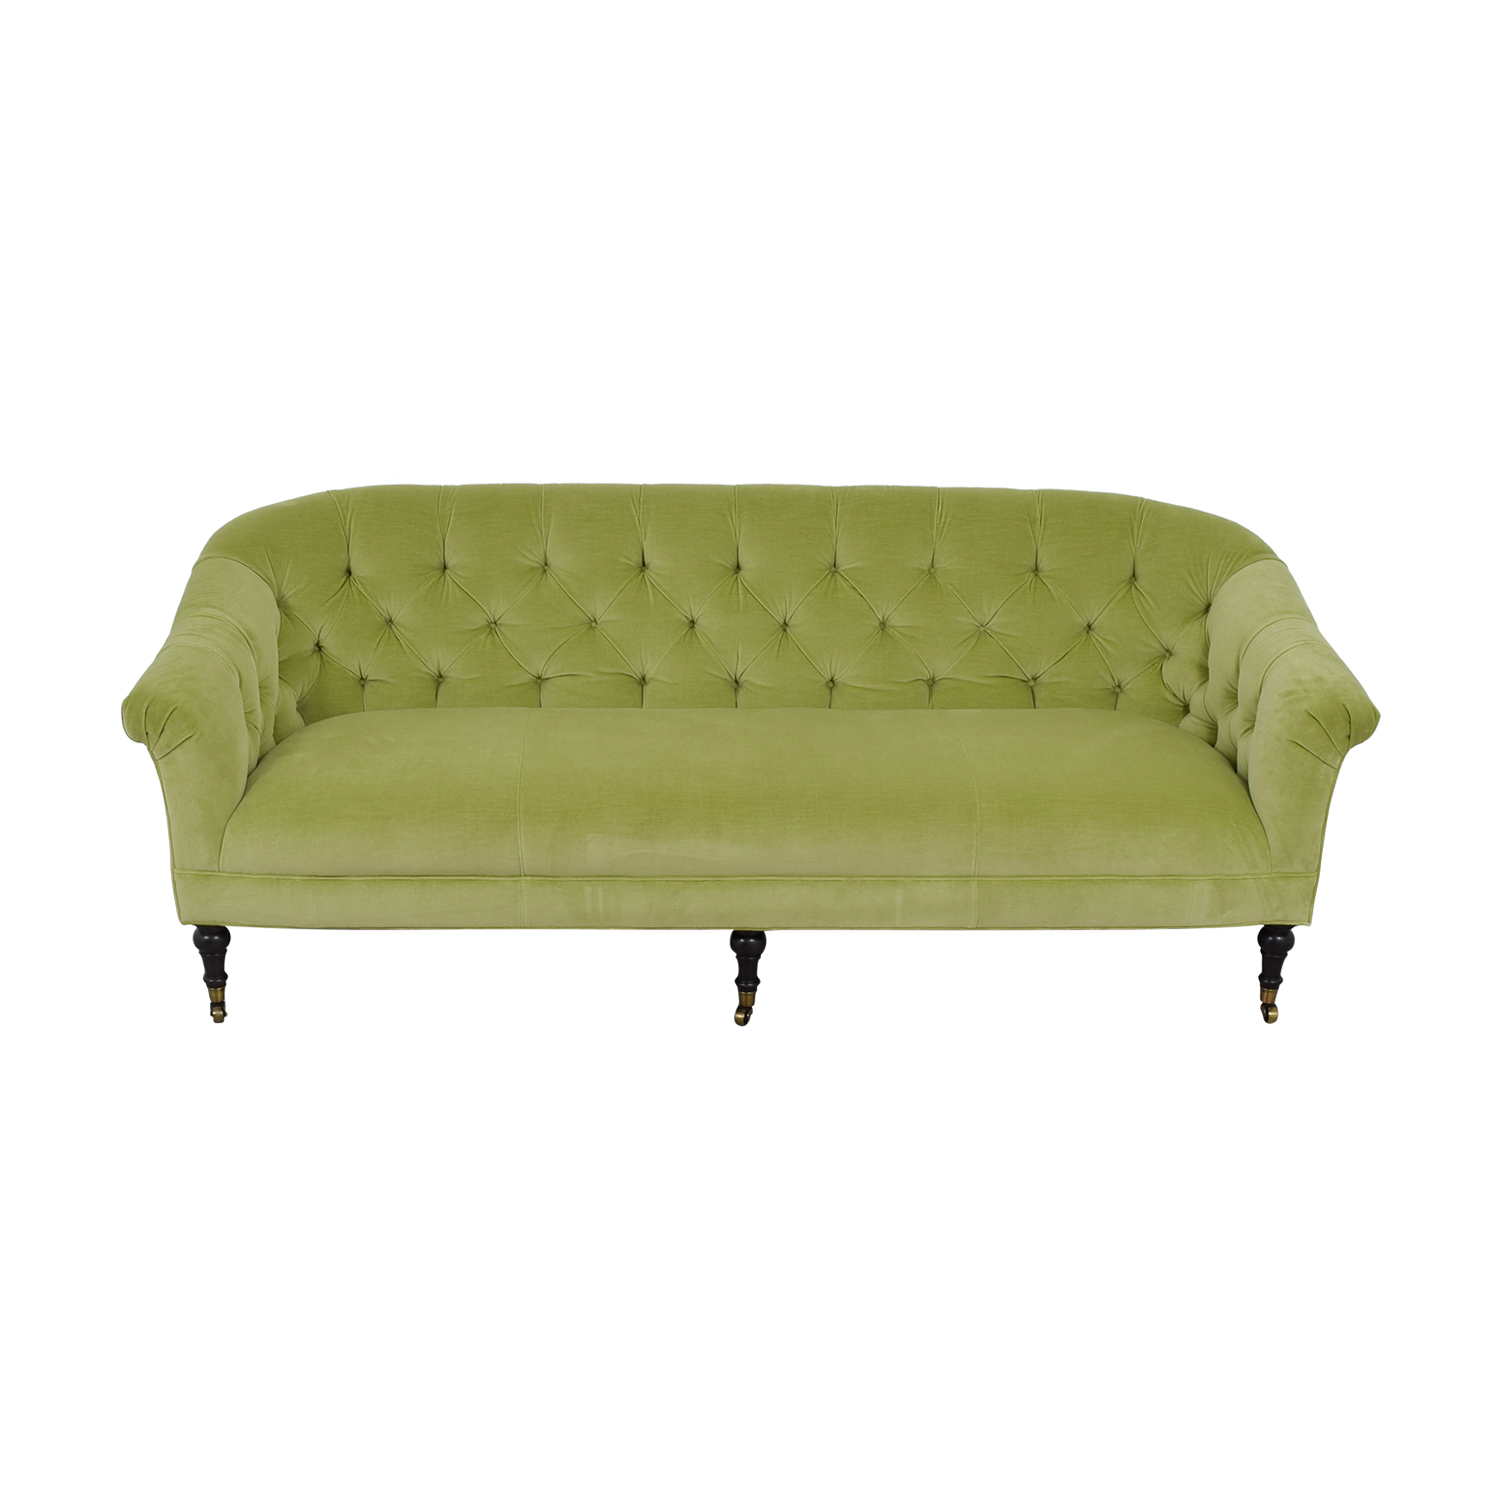 Arhaus Arhaus Green Tufted Sofa